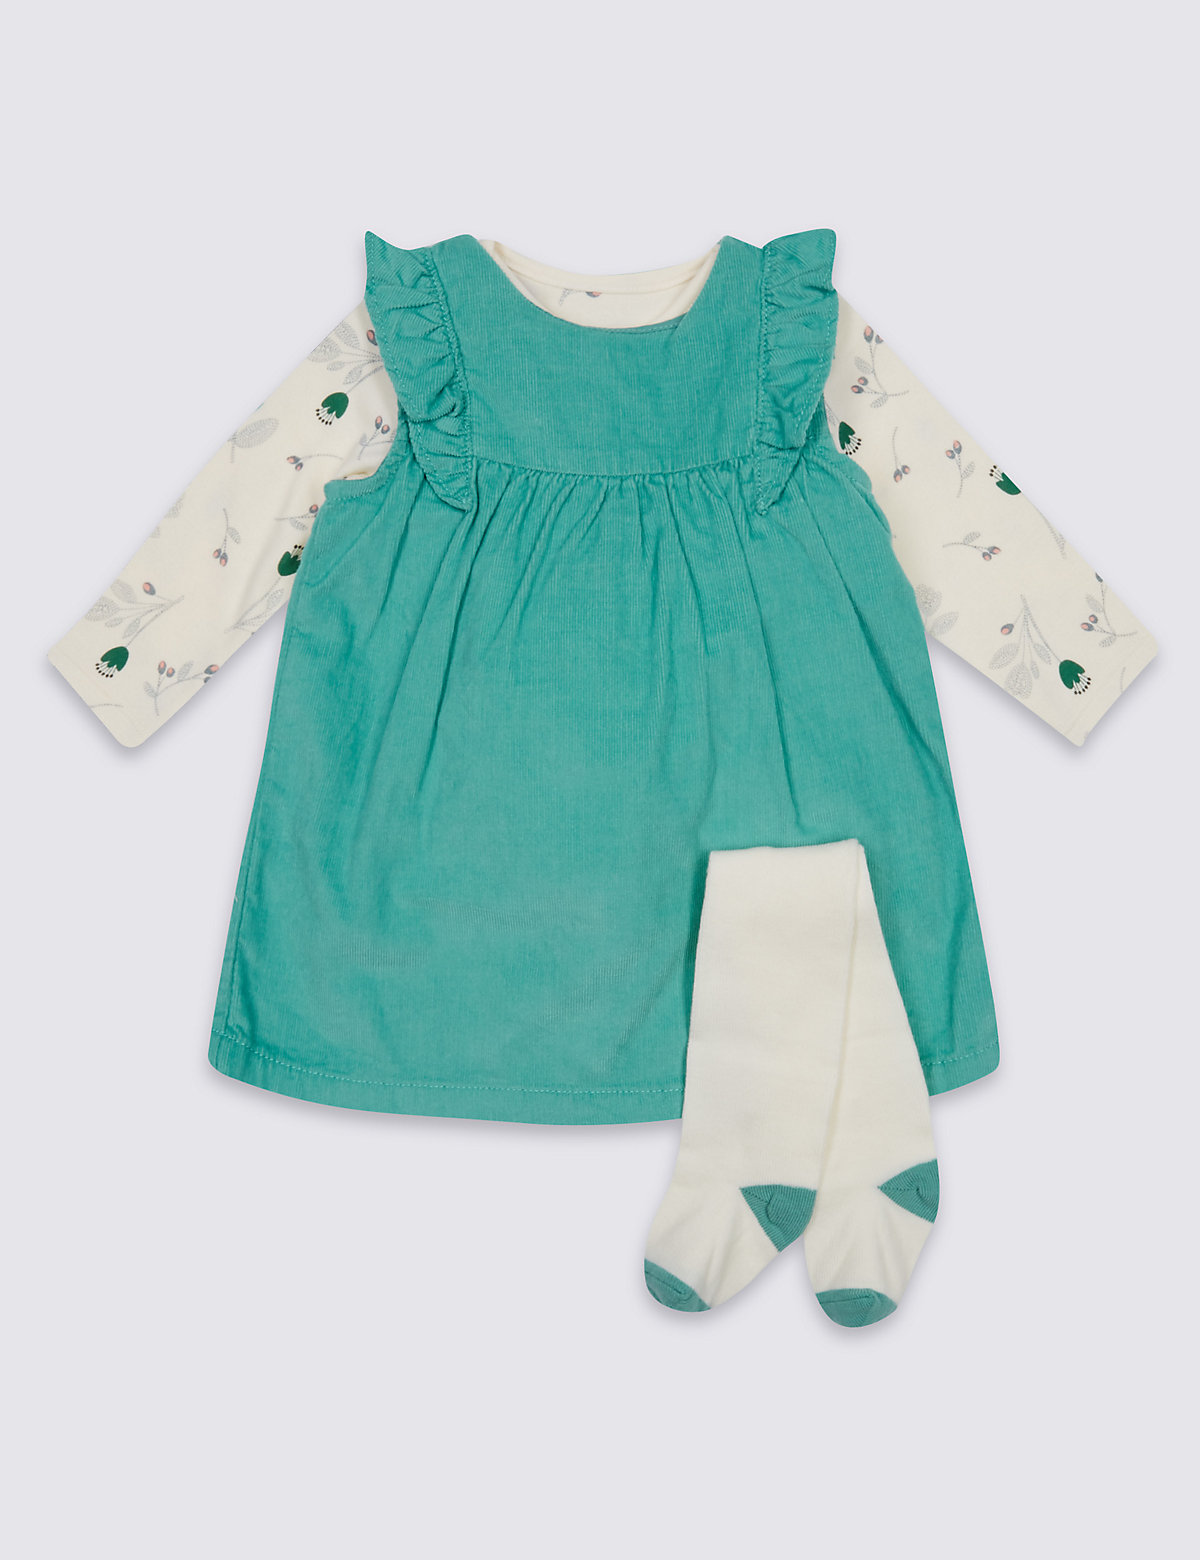 3 Piece Cord Dress & Bodysuit with Tights Outfit